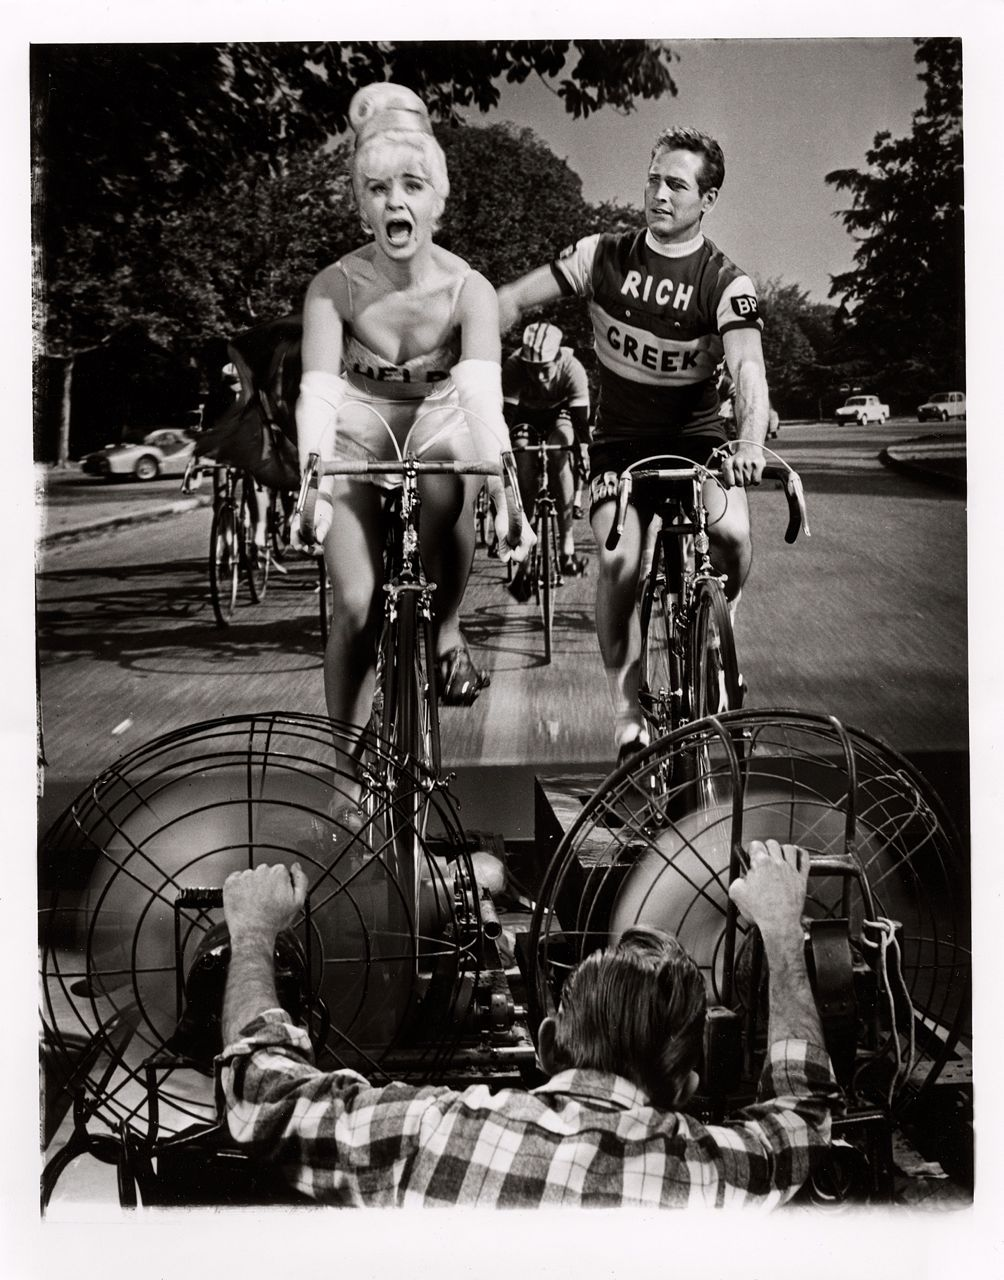 Piedmont Velo Sports Joanne Woodward And Paul Newman Ride